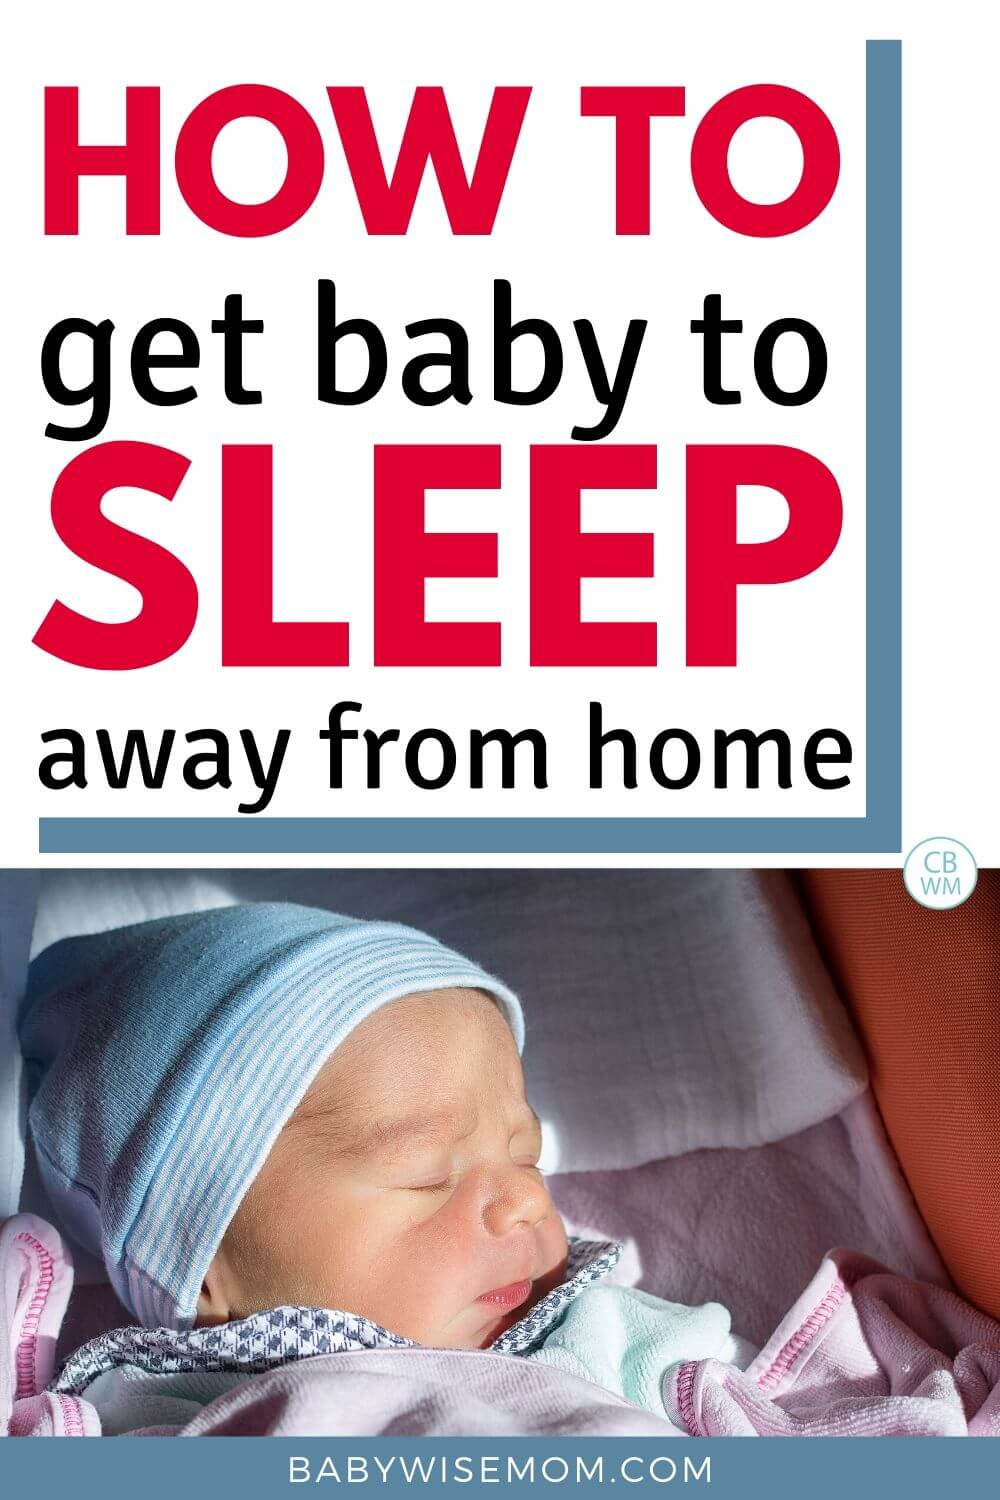 Get baby to sleep away from home pinnable image